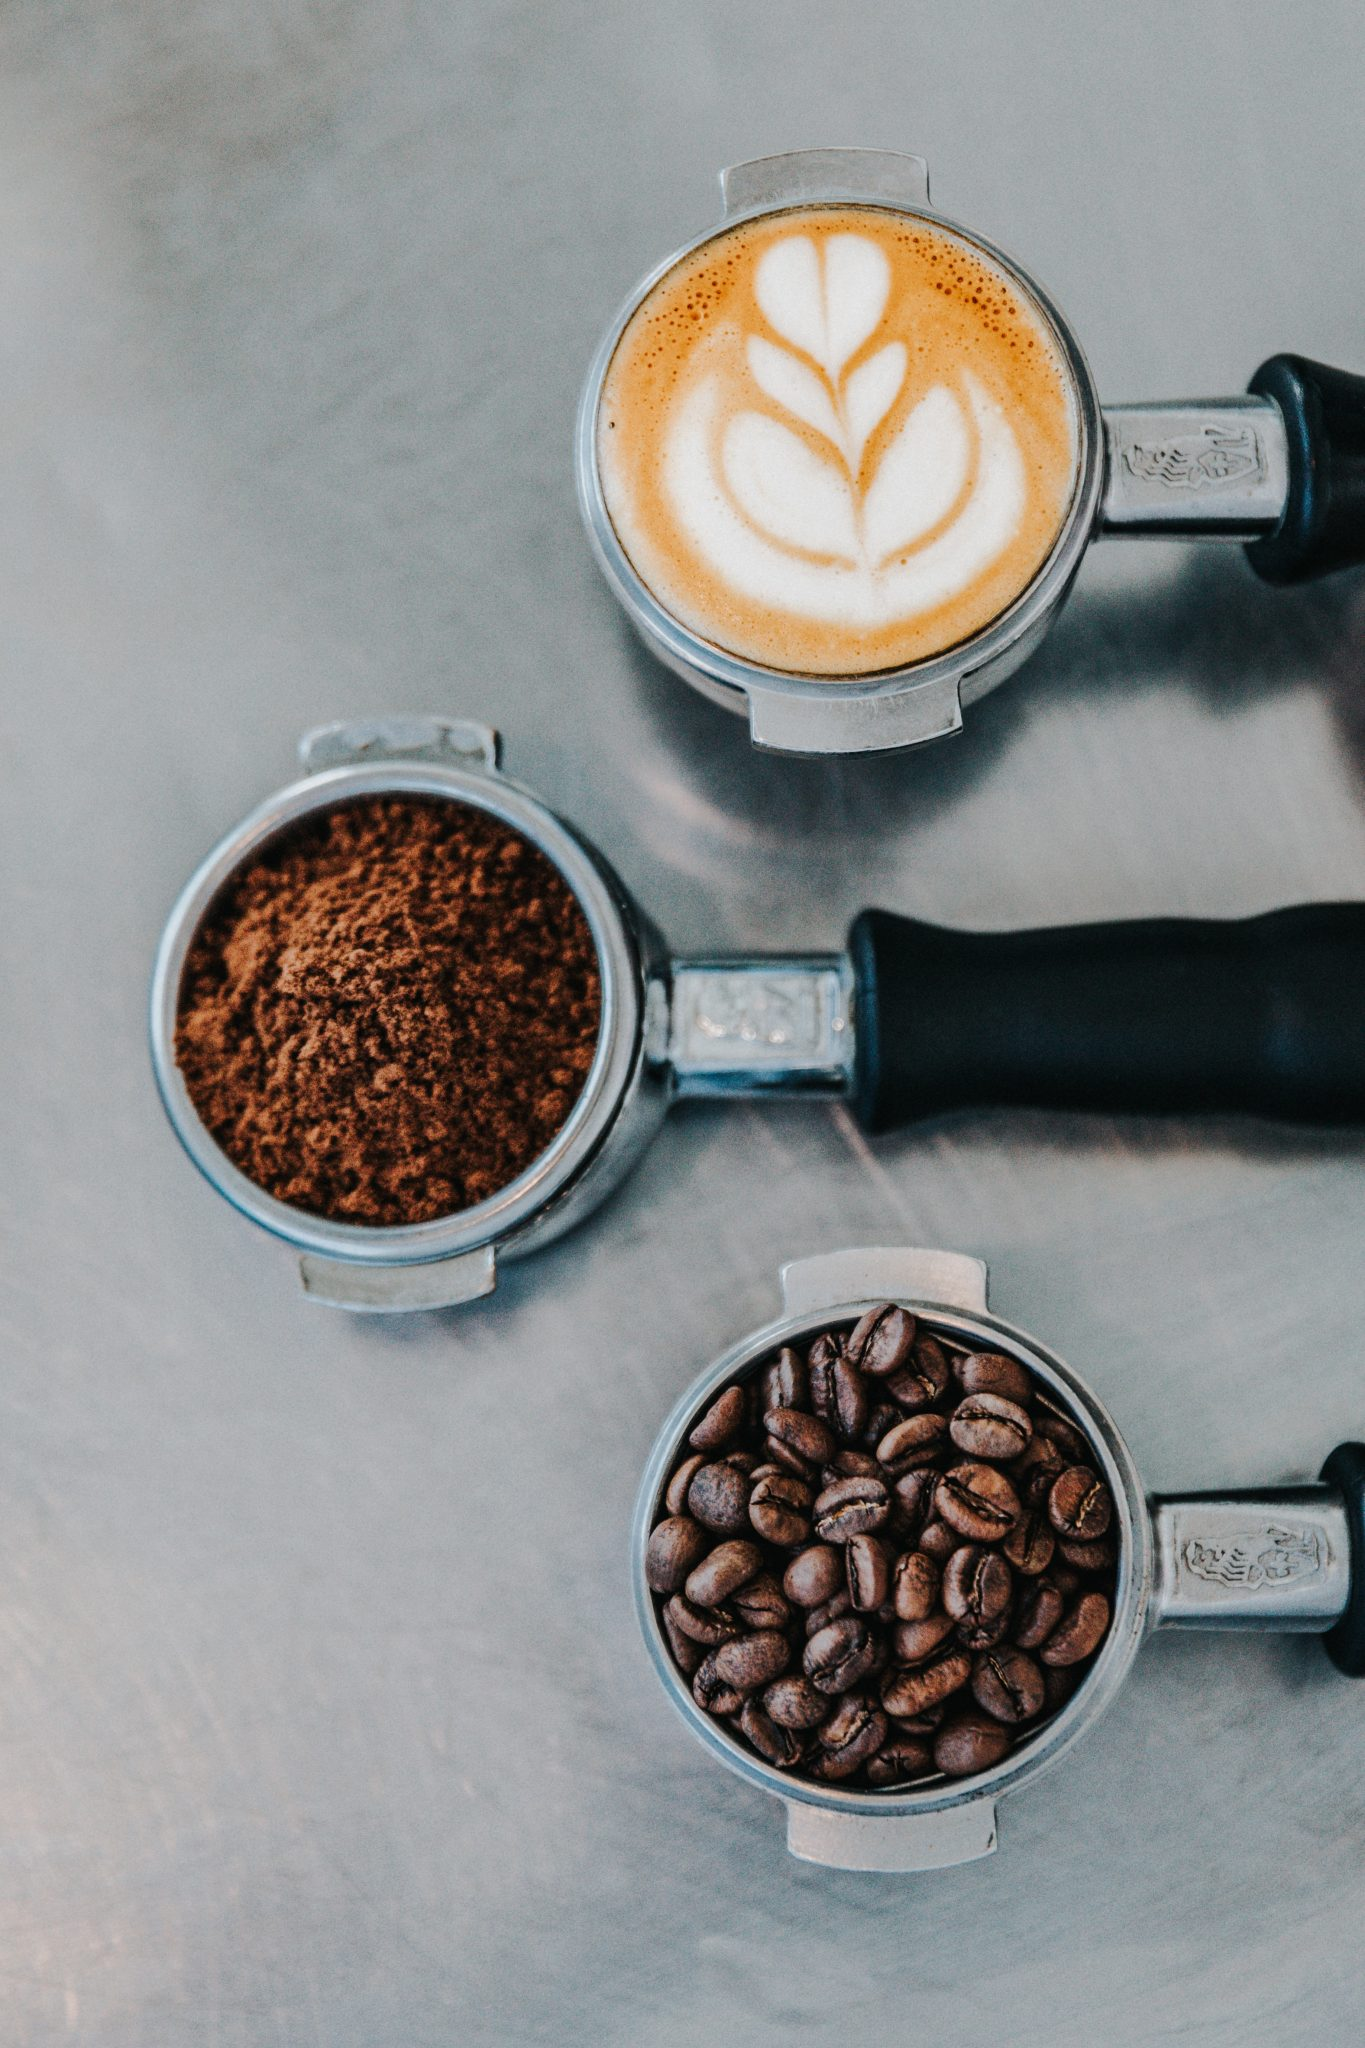 Benefits Of Drinking Coffee flat lay photography of coffee latte, ground coffee, and coffee beans